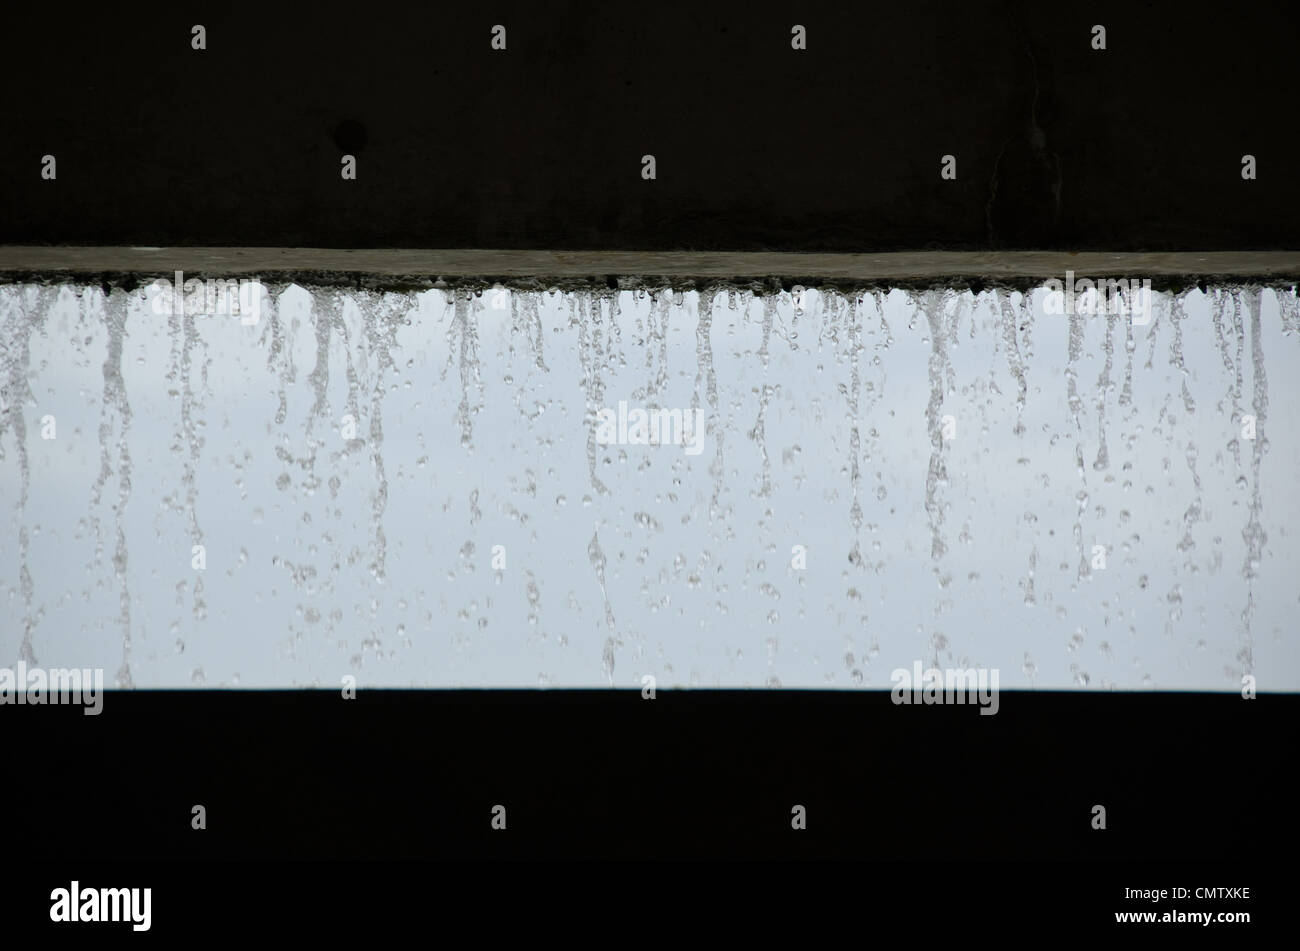 Curtain of water seen from inside a building Stock Photo